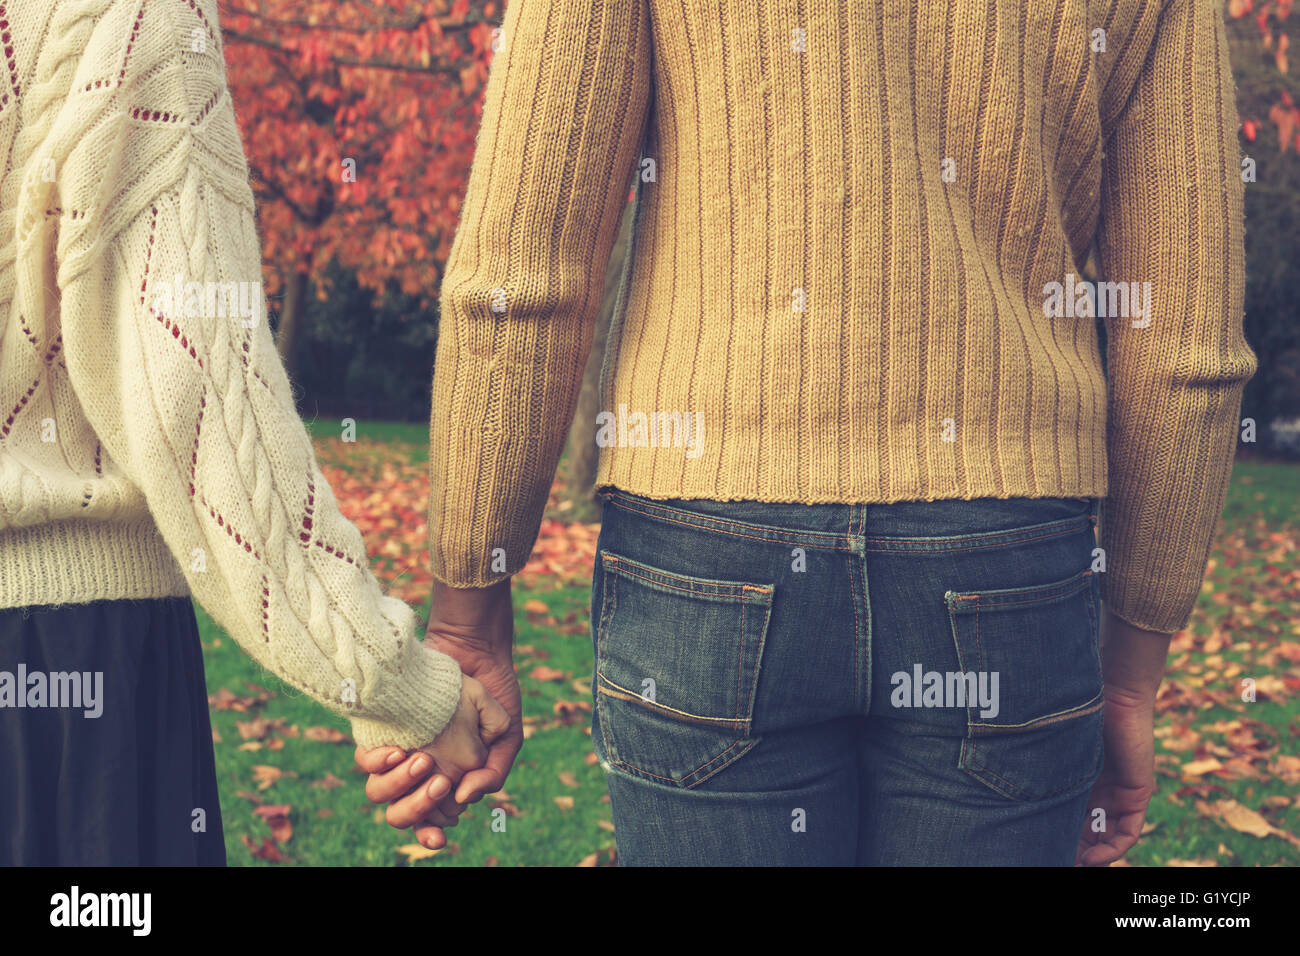 A young couple is holding hands in the park by a tree in autumn - Stock Image